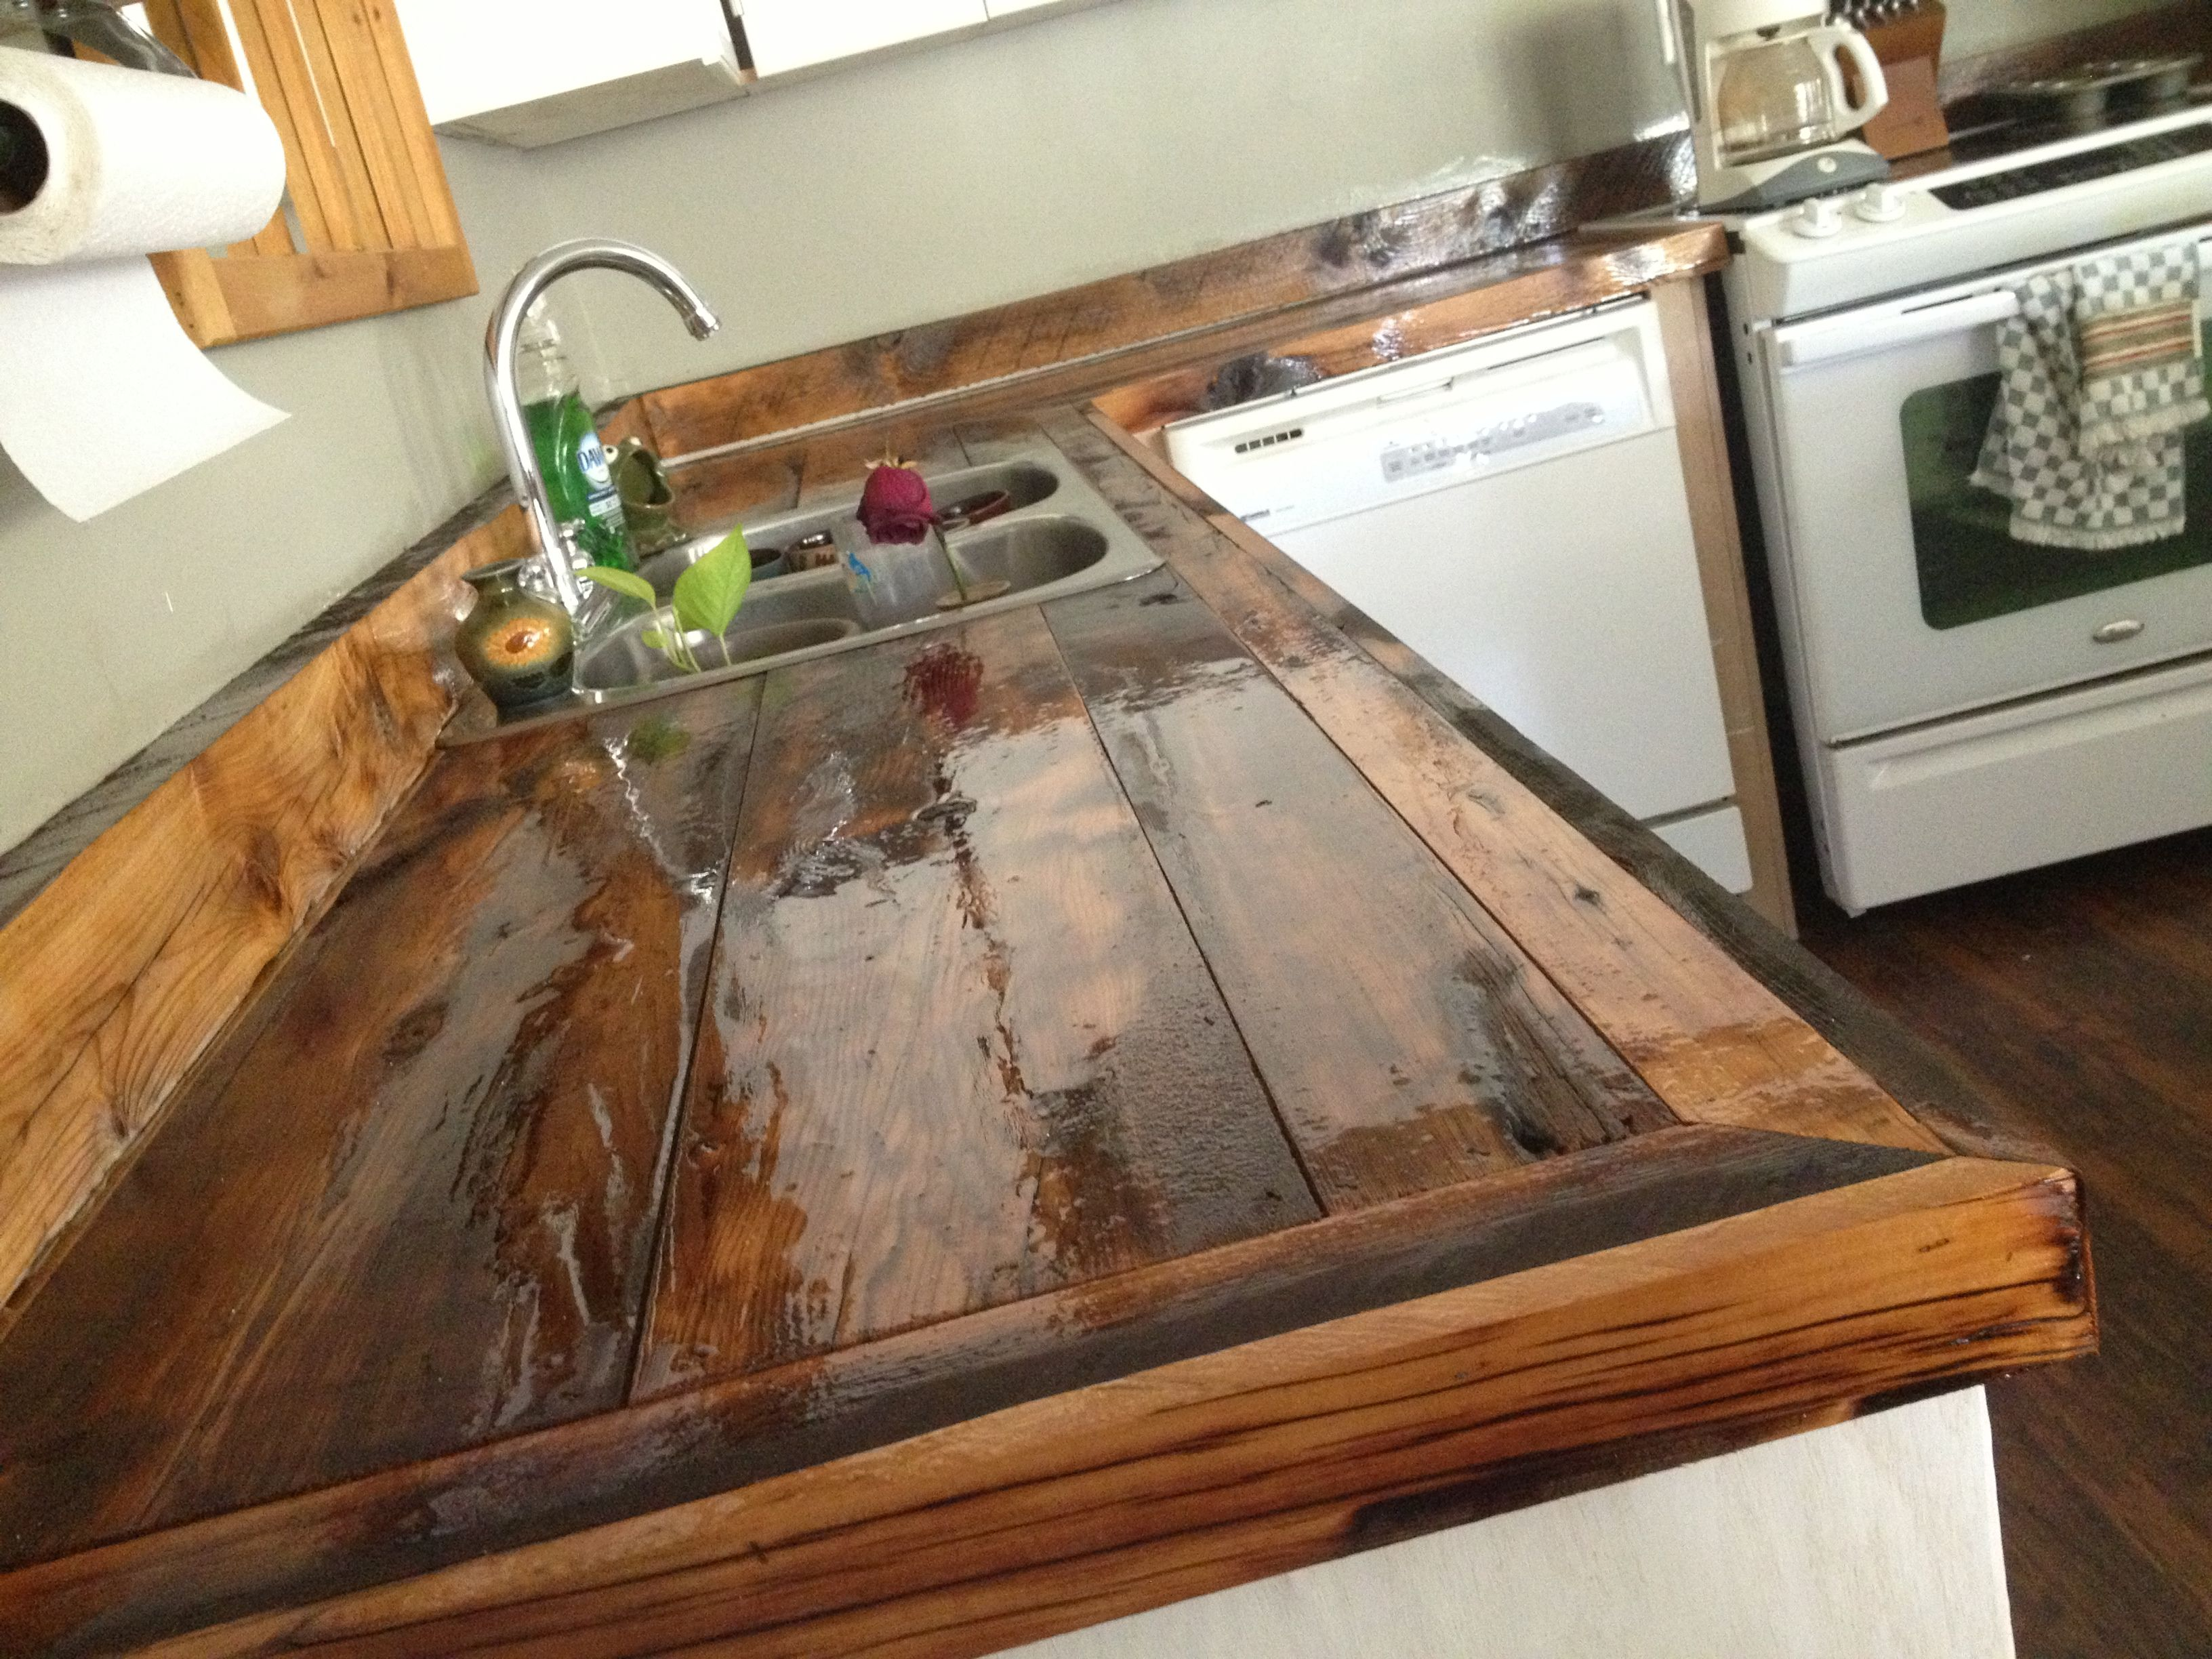 painting wood kitchen antique countertops diy picture | life